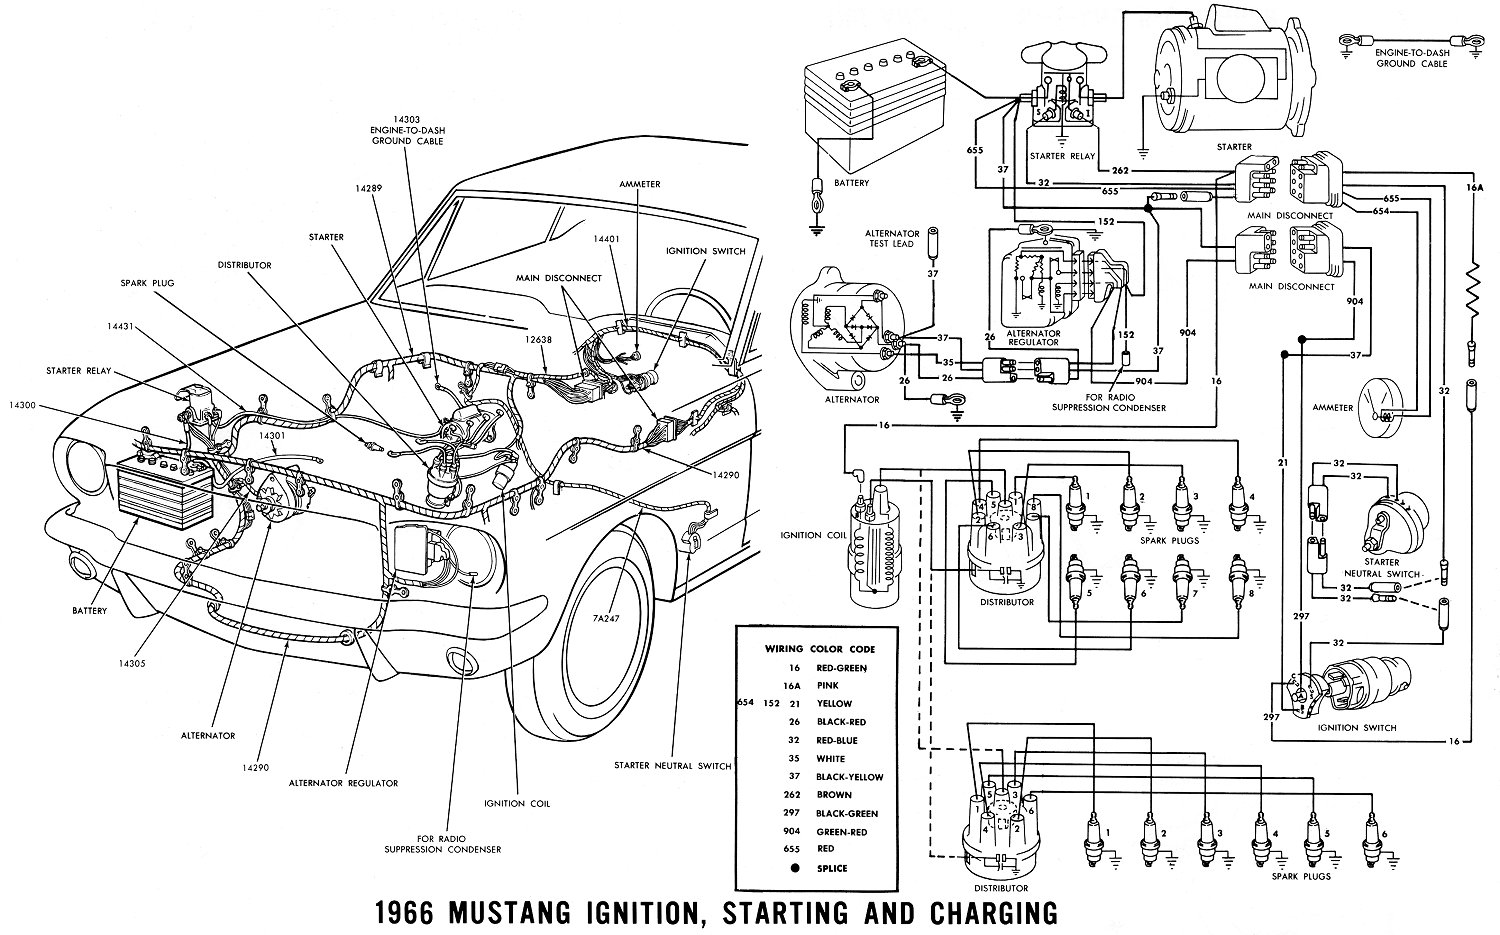 1966 Ford Truck Ignition Switch Wiring Diagram Diagrams F100 Engine Free Picture 1971 Mustang Harness Get Image About Kubota 1968